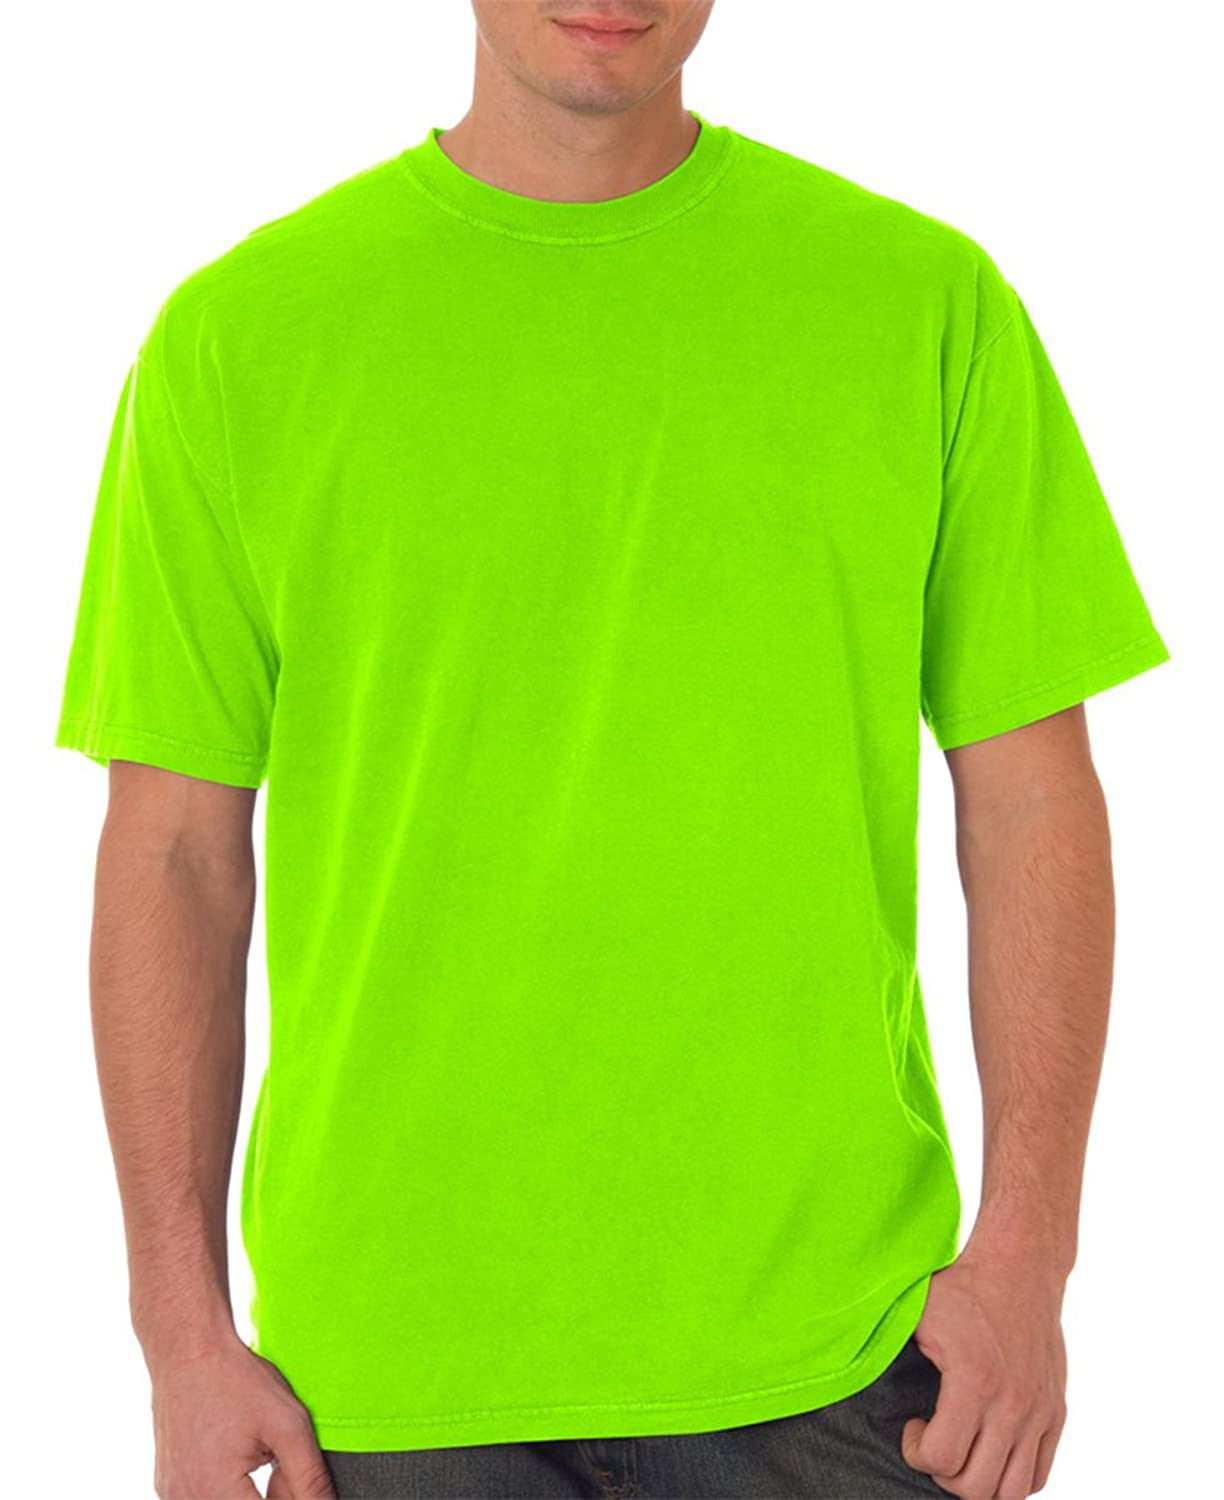 Chouinard Adult Classic Heavyweight Short Sleeve T-Shirt, Neon Green